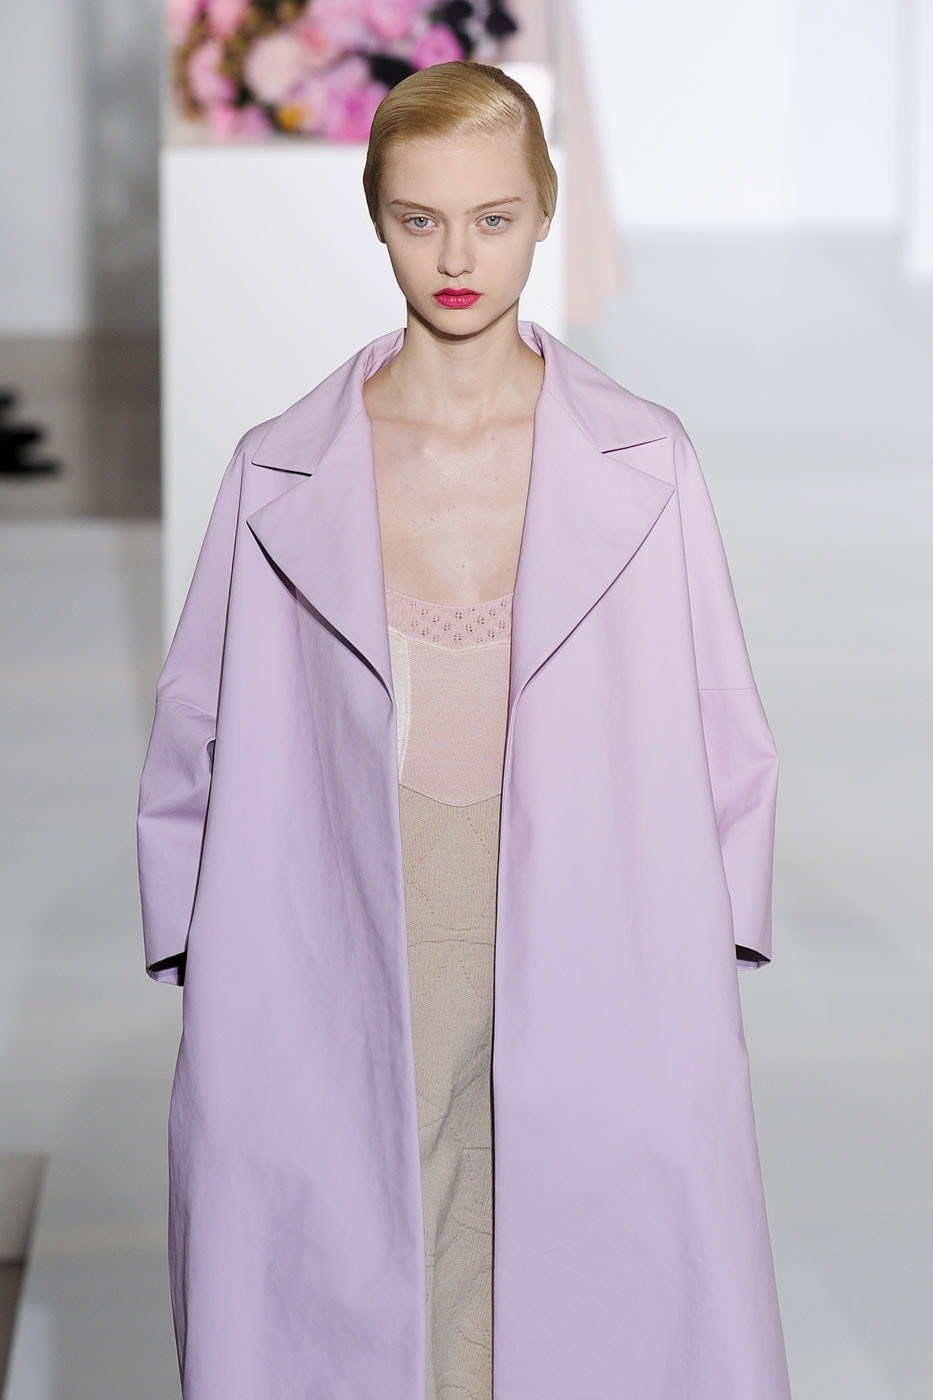 Jil Sander Fall/Winter 2012